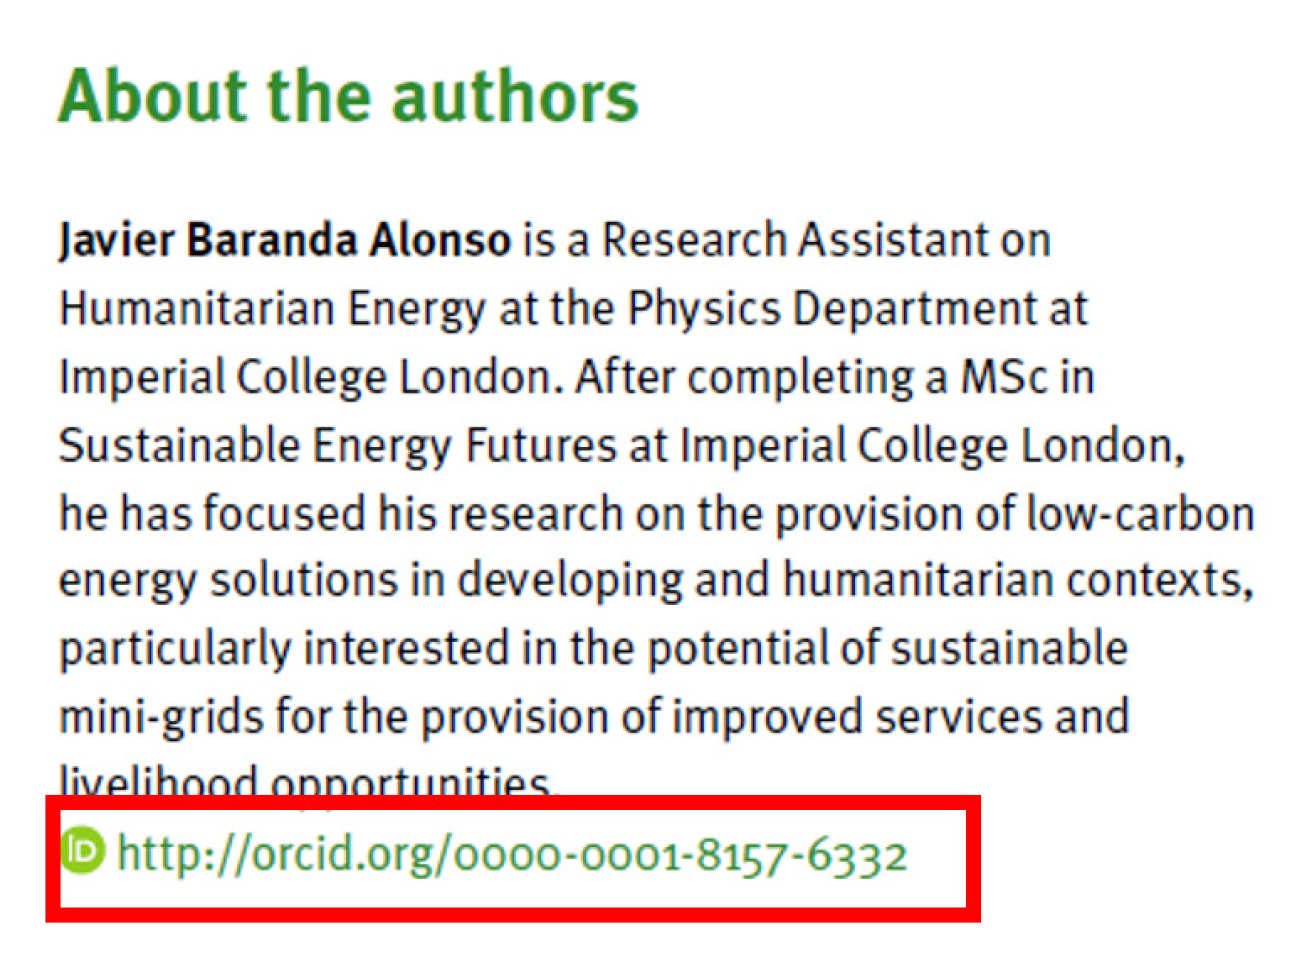 About the authors section with ORCID id link highlighted